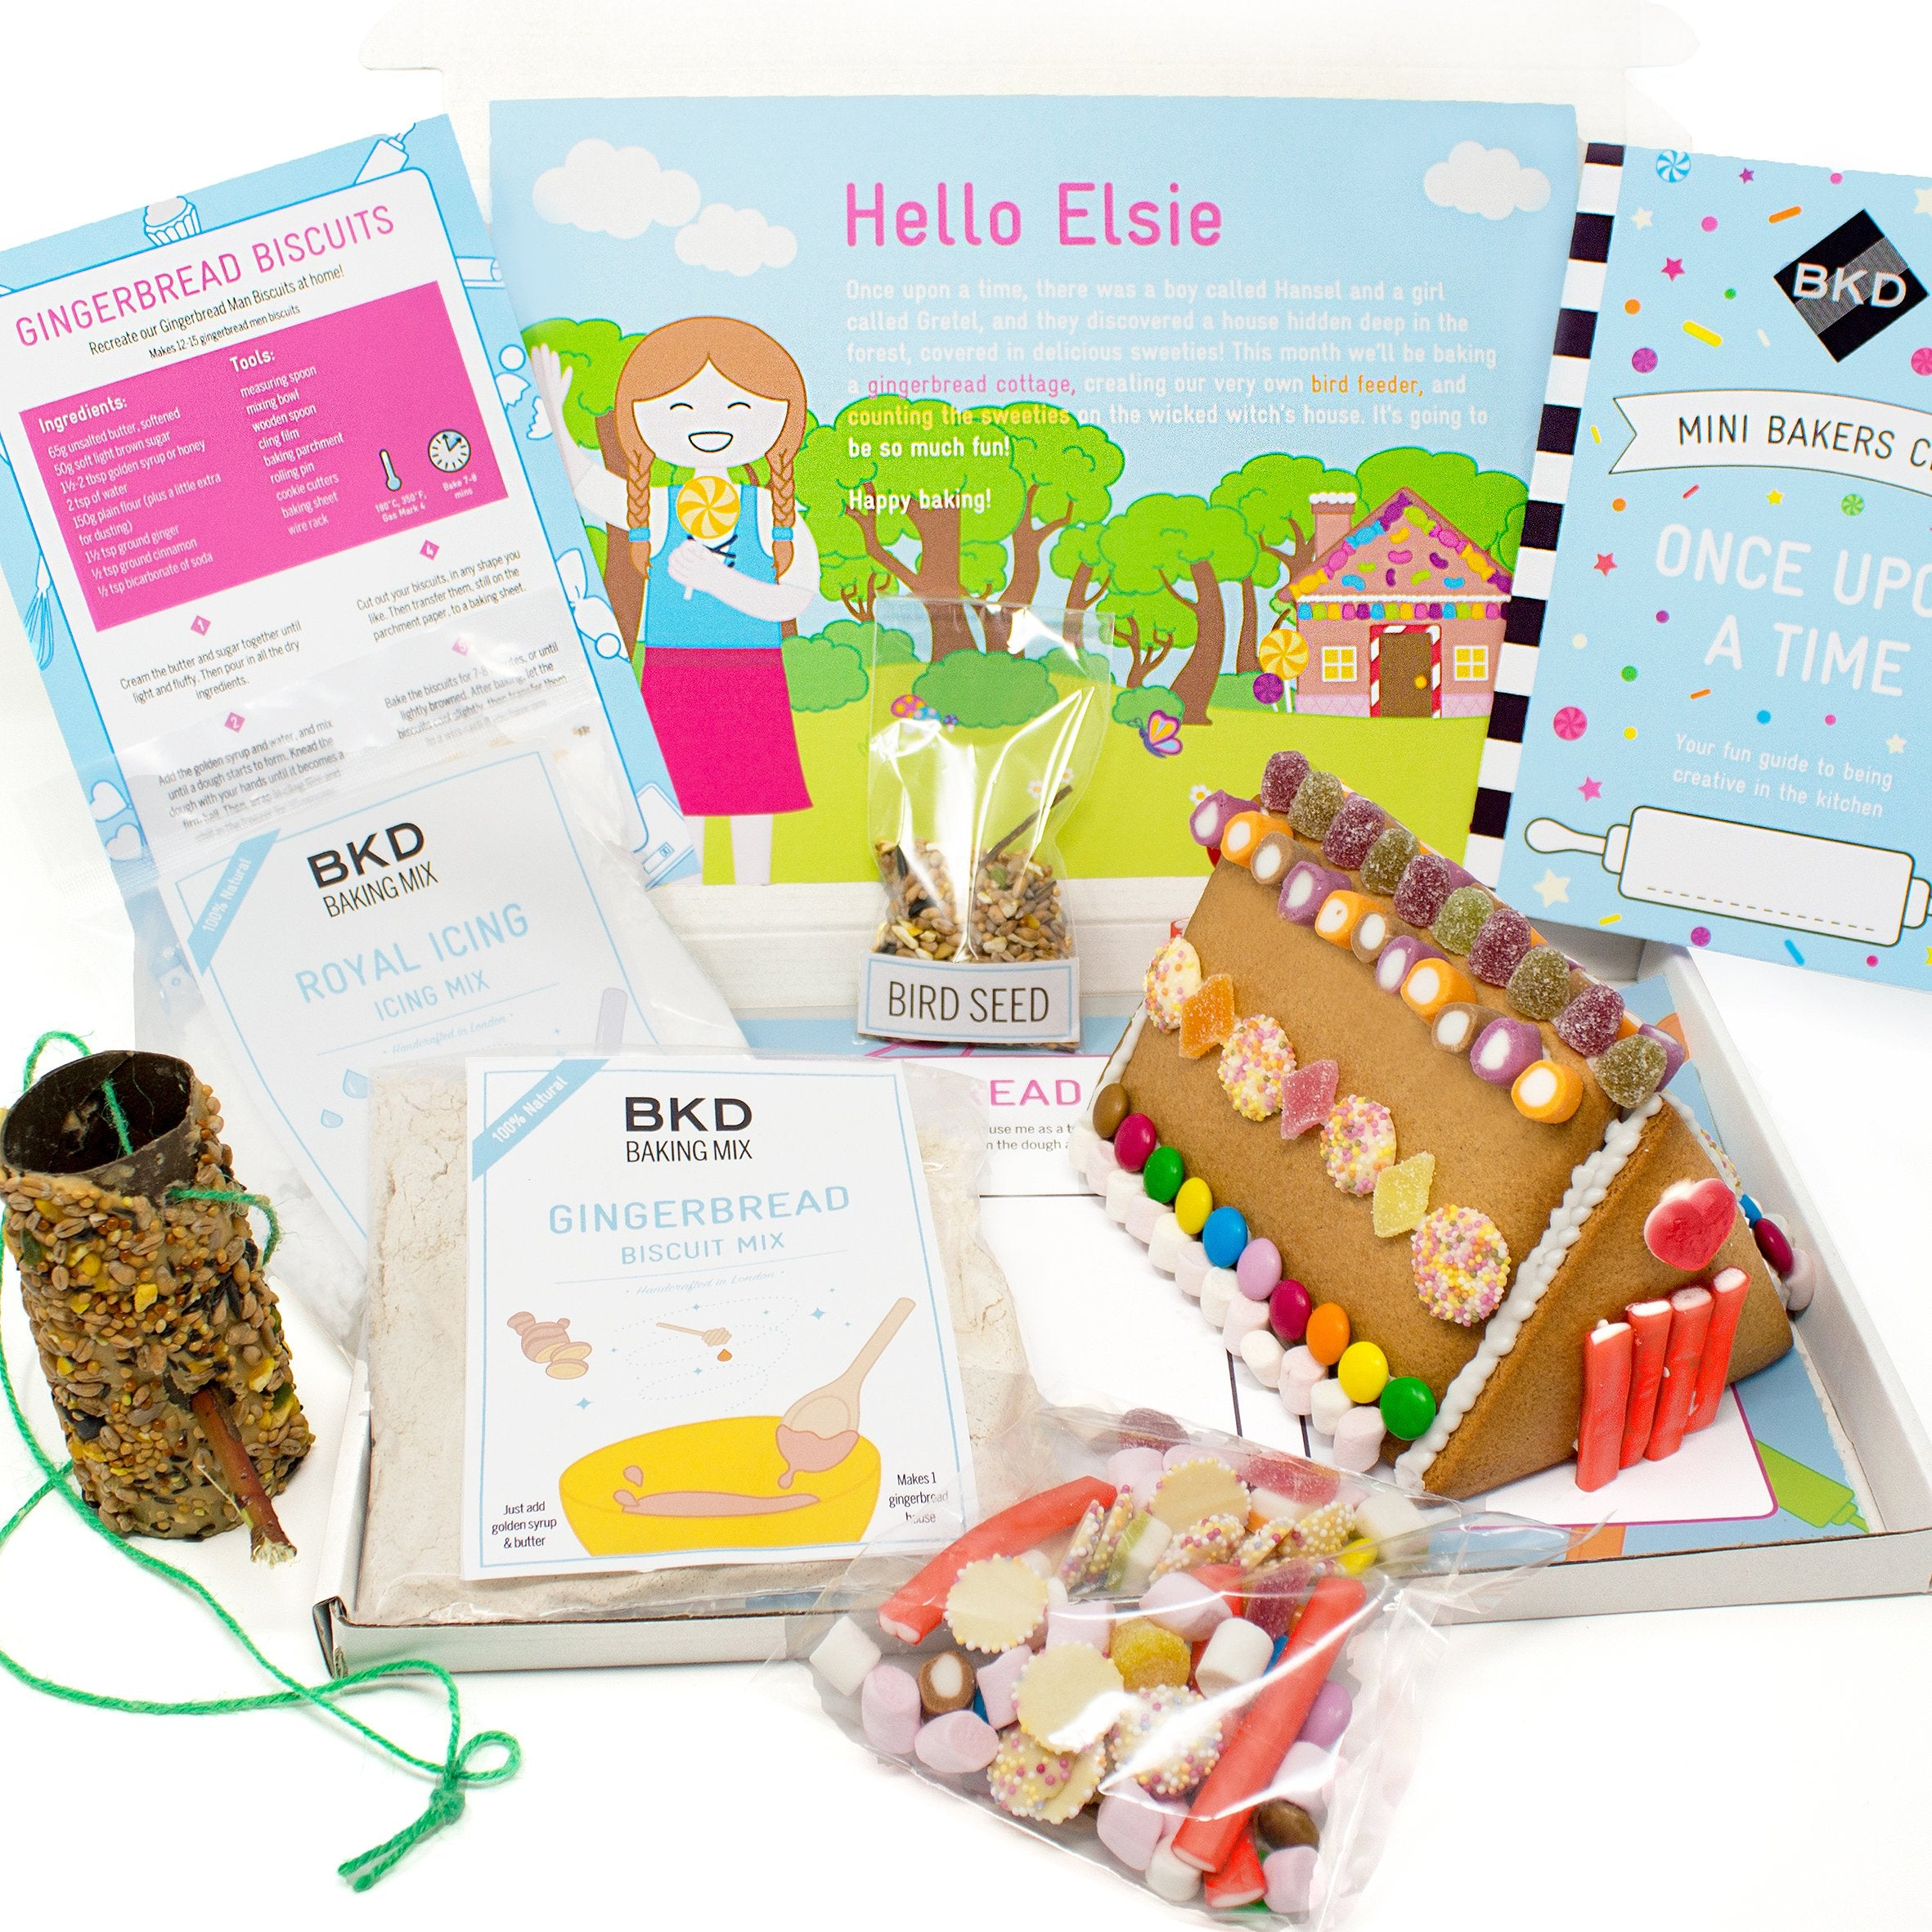 Mini Bakers Club | 12 Months Subscription - £107.88 - BKD